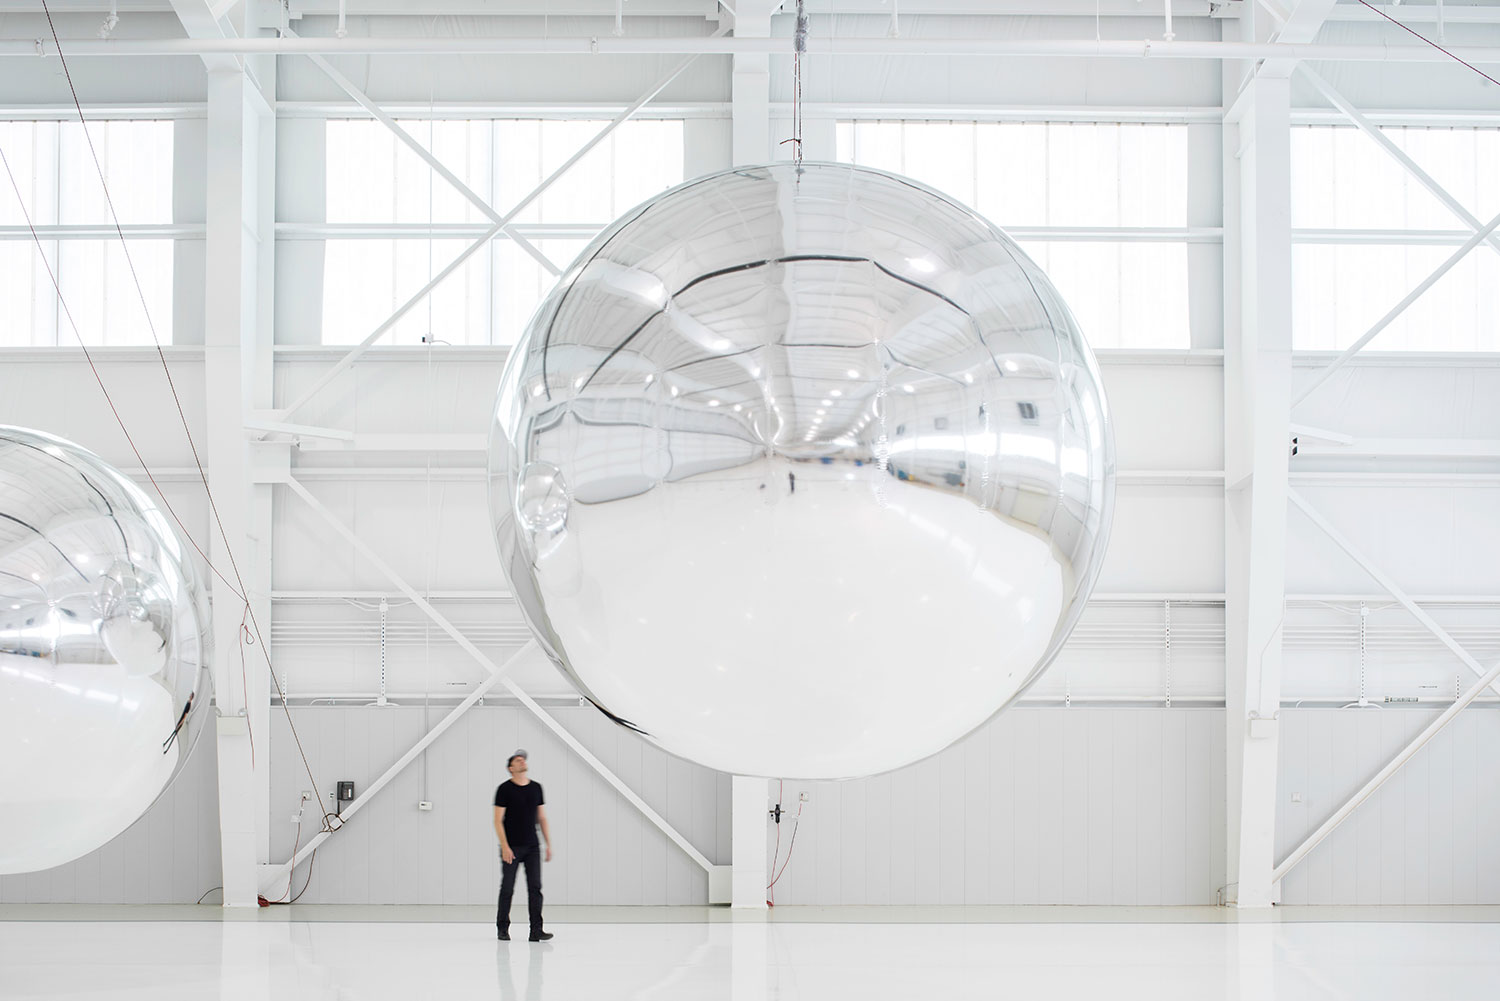 Trevor Paglen, Prototype for a Nonfunctional Satellite (Design 4; Build 4), 2013, mixed media